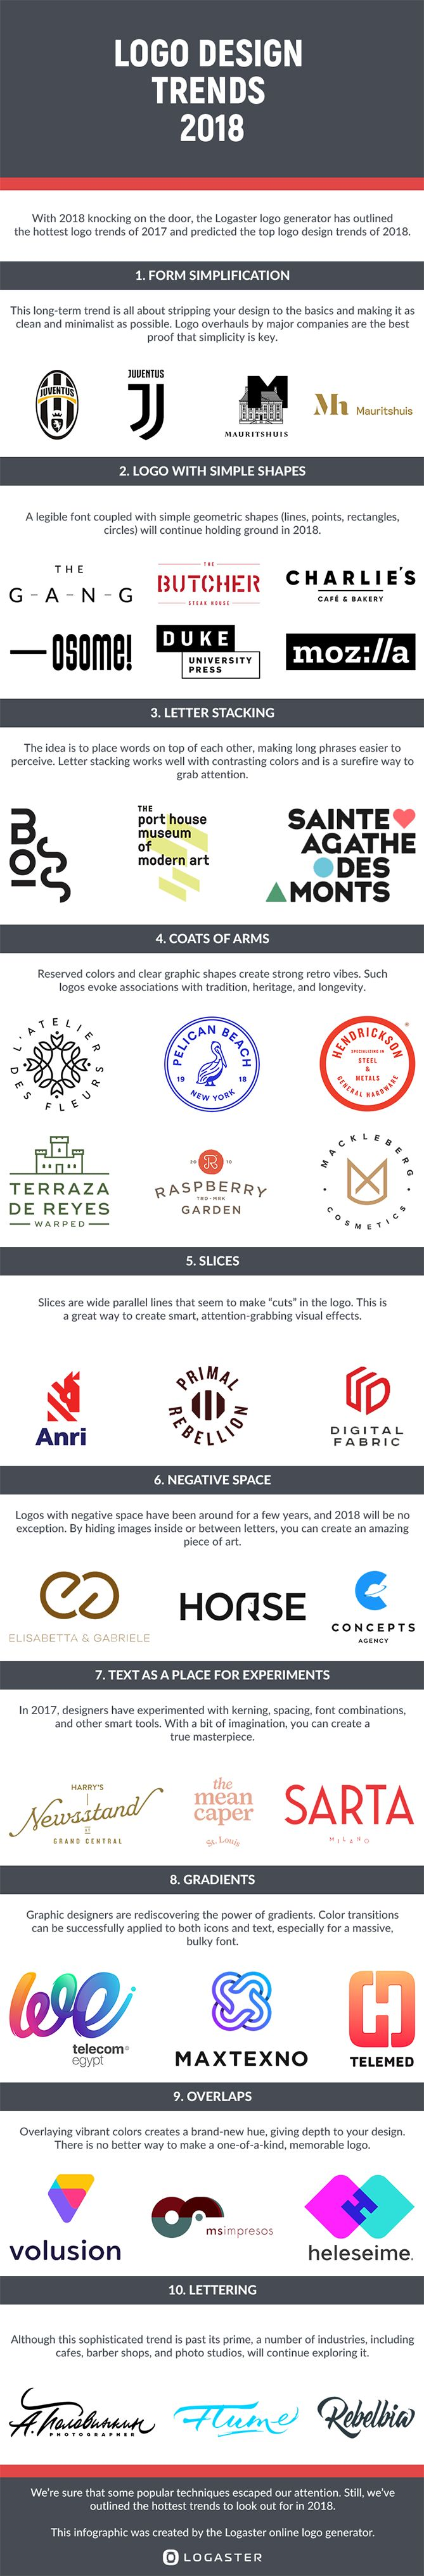 10 Logo Design Trends to Watch for in 2018 [Infographic]